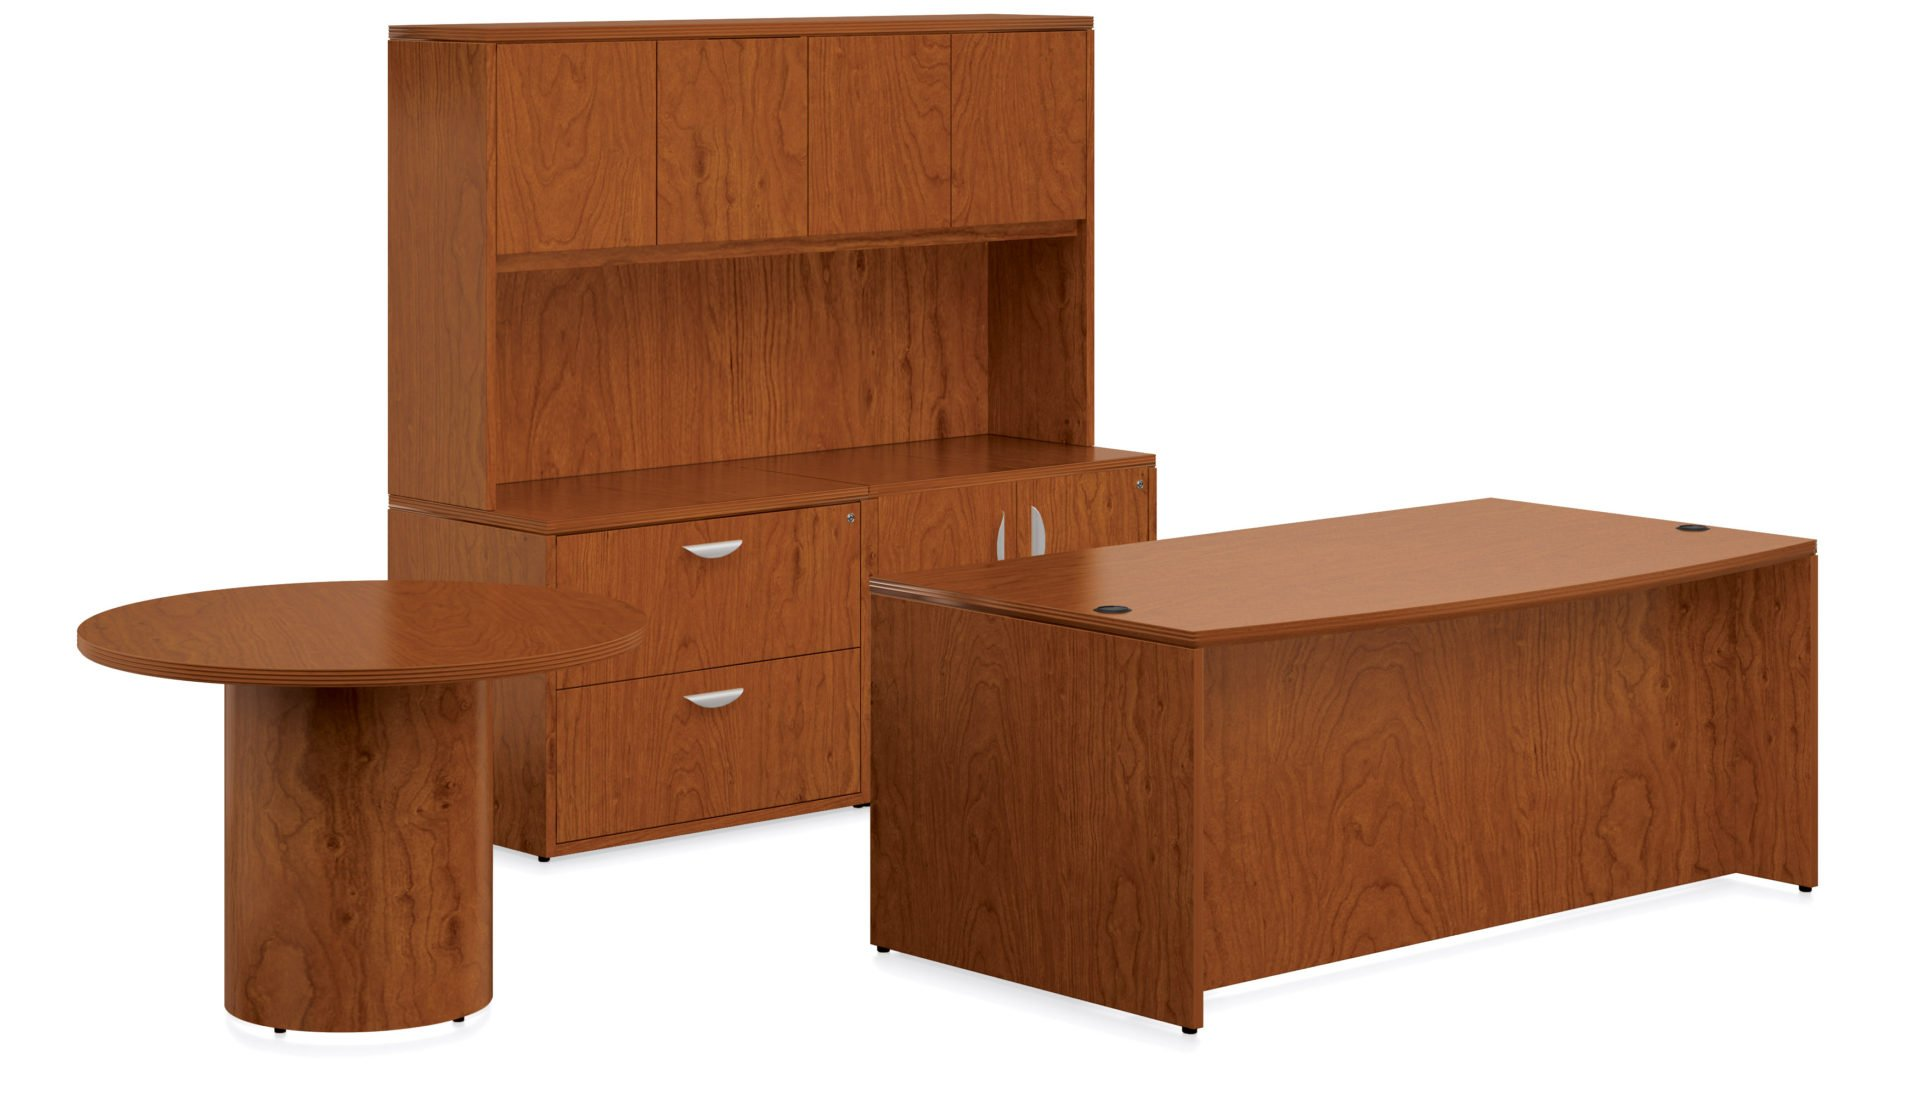 ... Executive Desk, Hutch And Round Table. Product Description